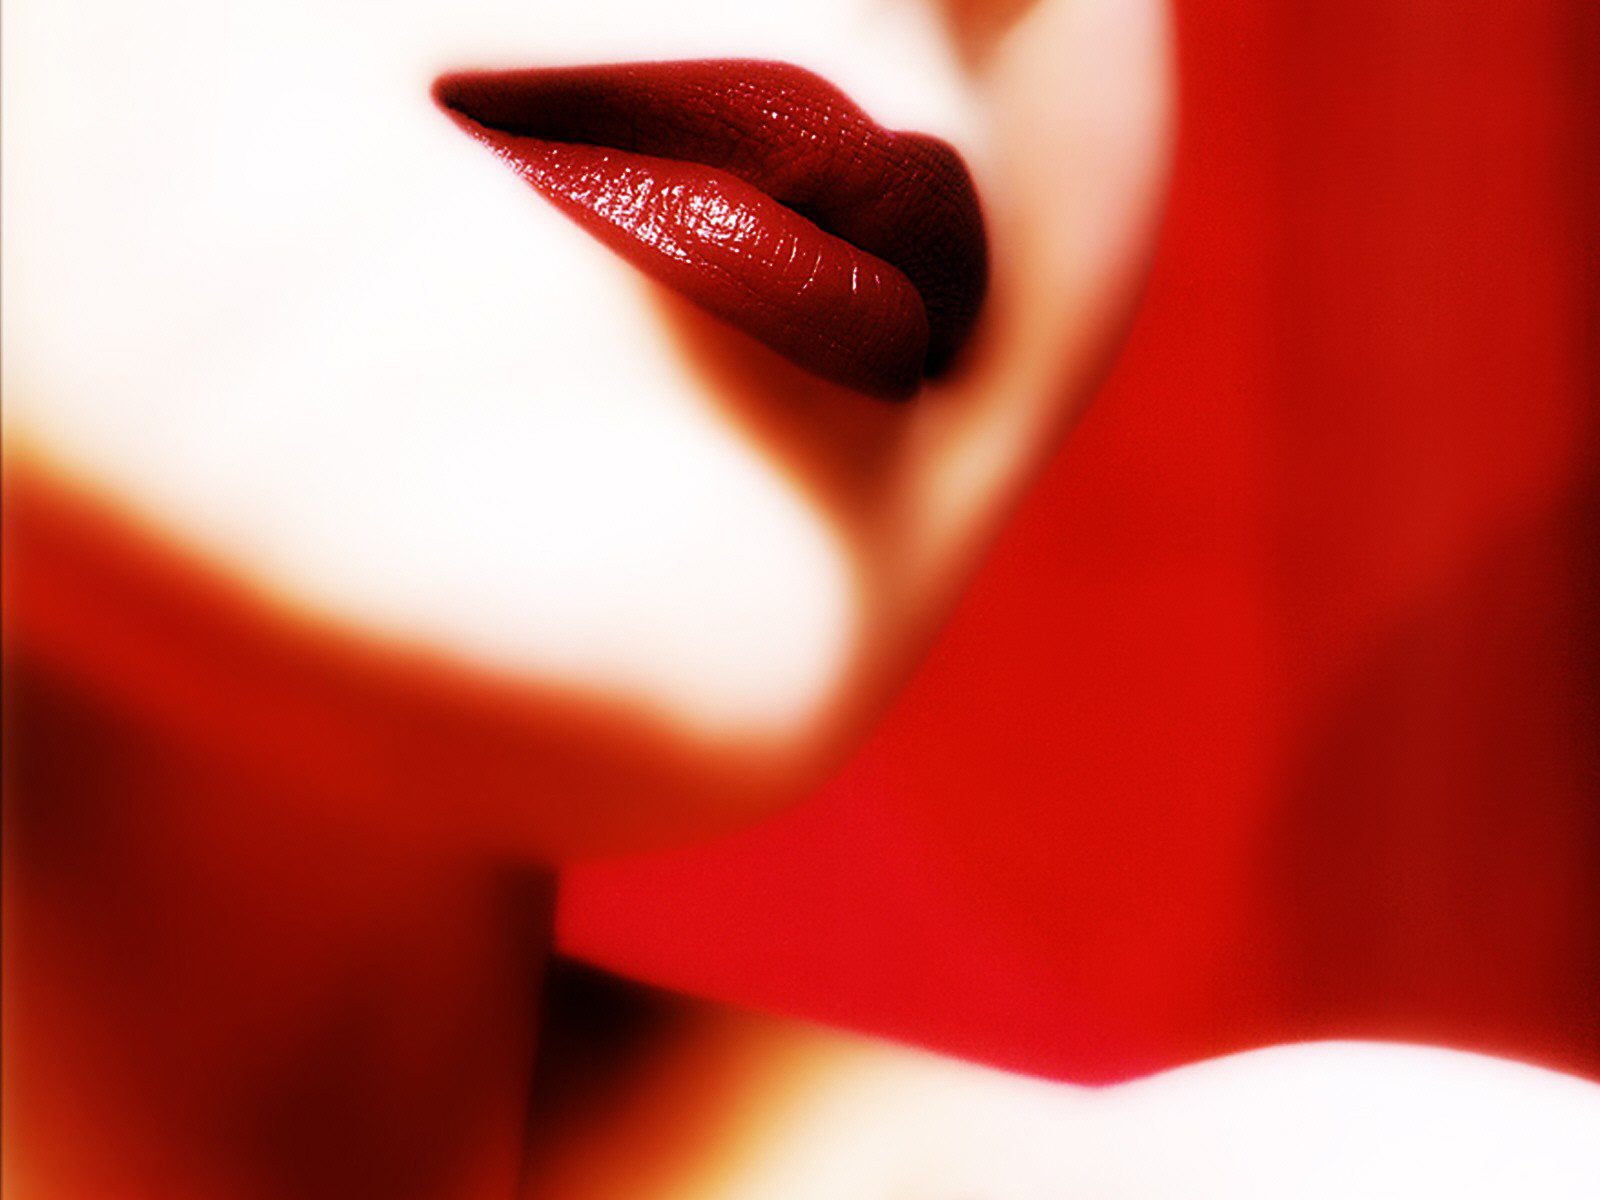 Reddish Lips 513.17 Kb